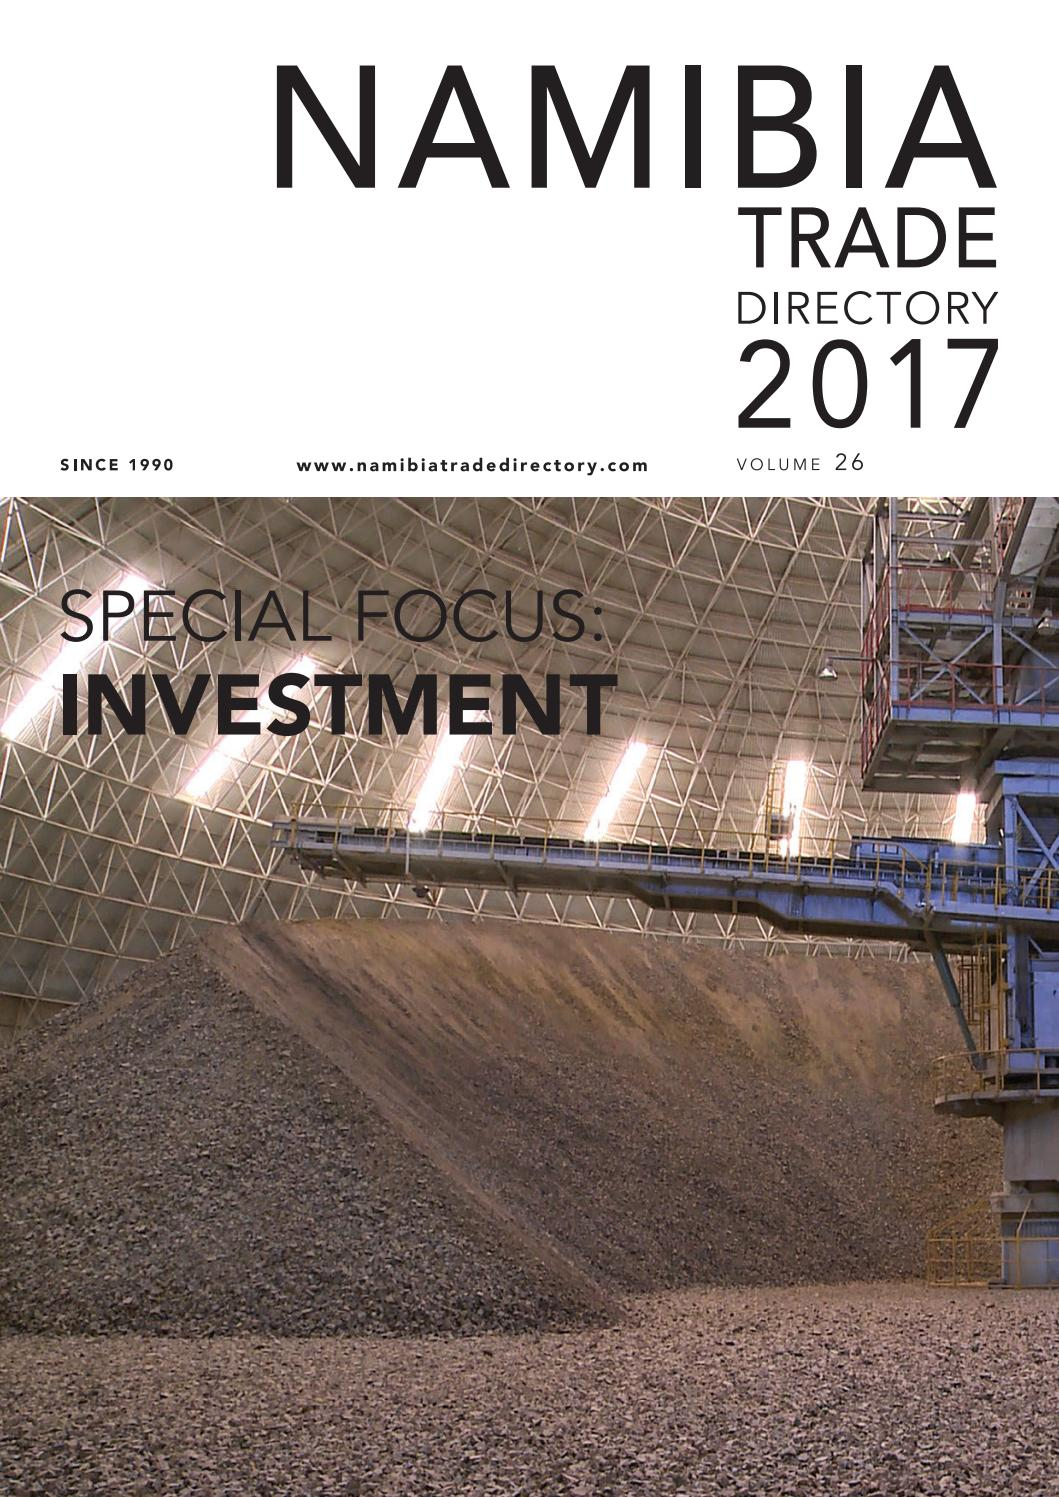 Namibia trade directory 2017 by venture media issuu fandeluxe Gallery